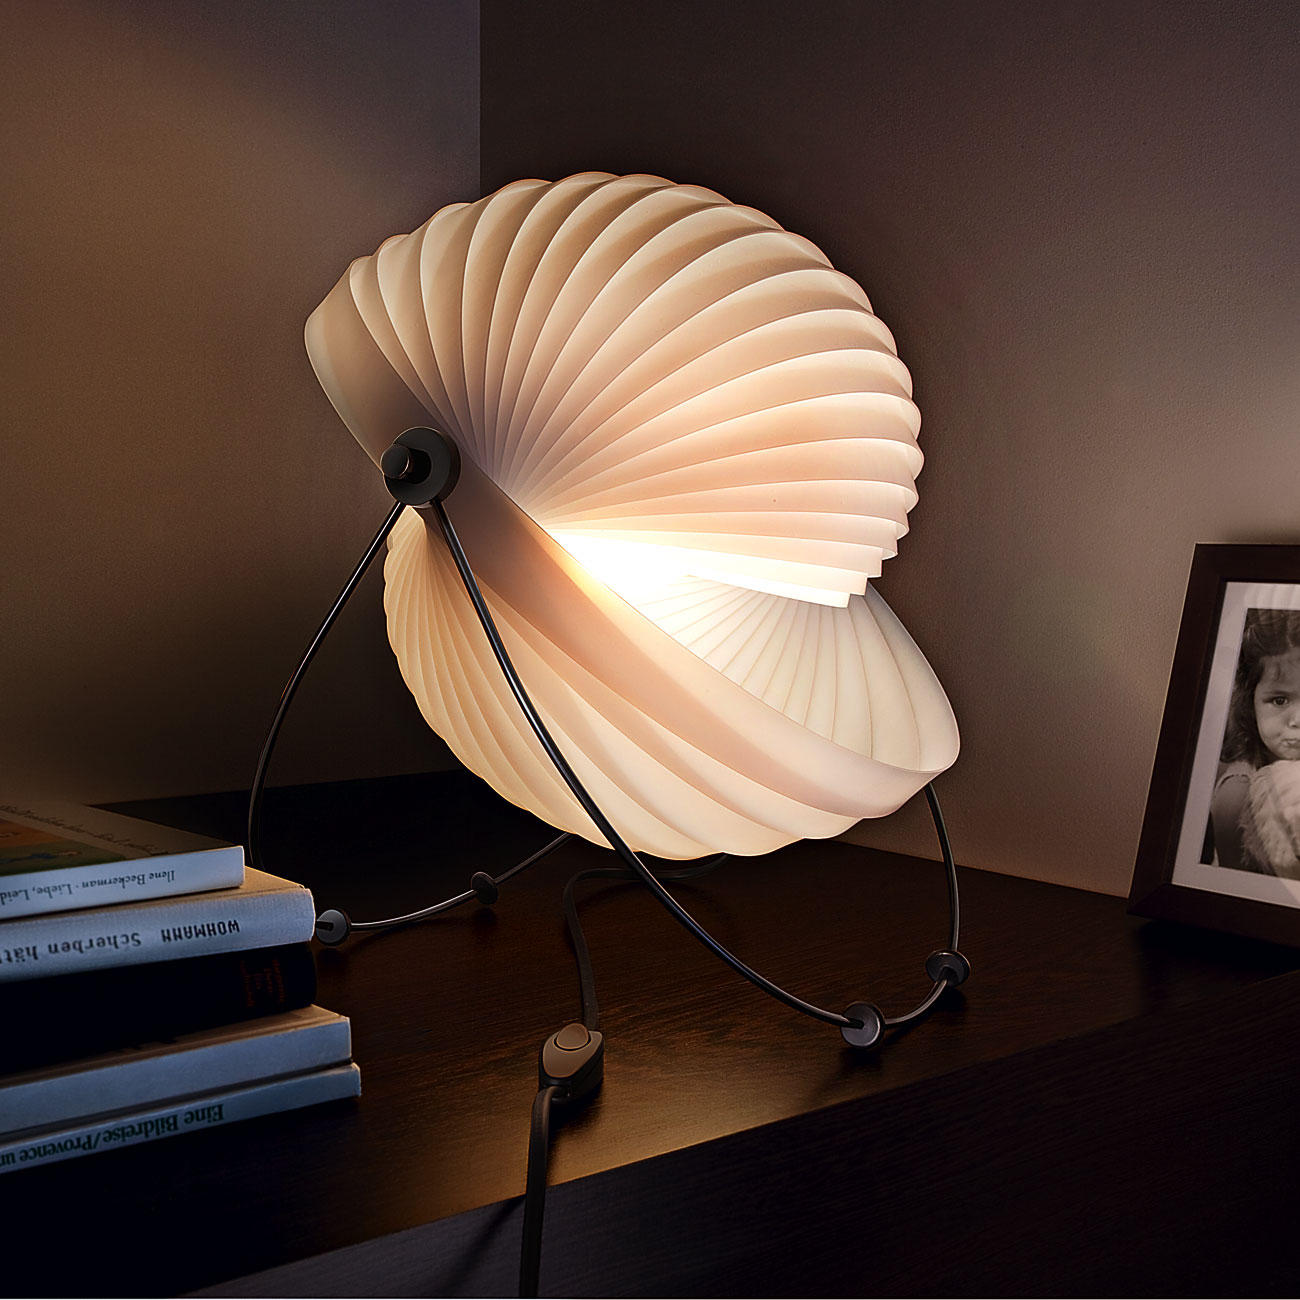 Lampe design eclipse garantie produit de 3 ans for Architecture celebre